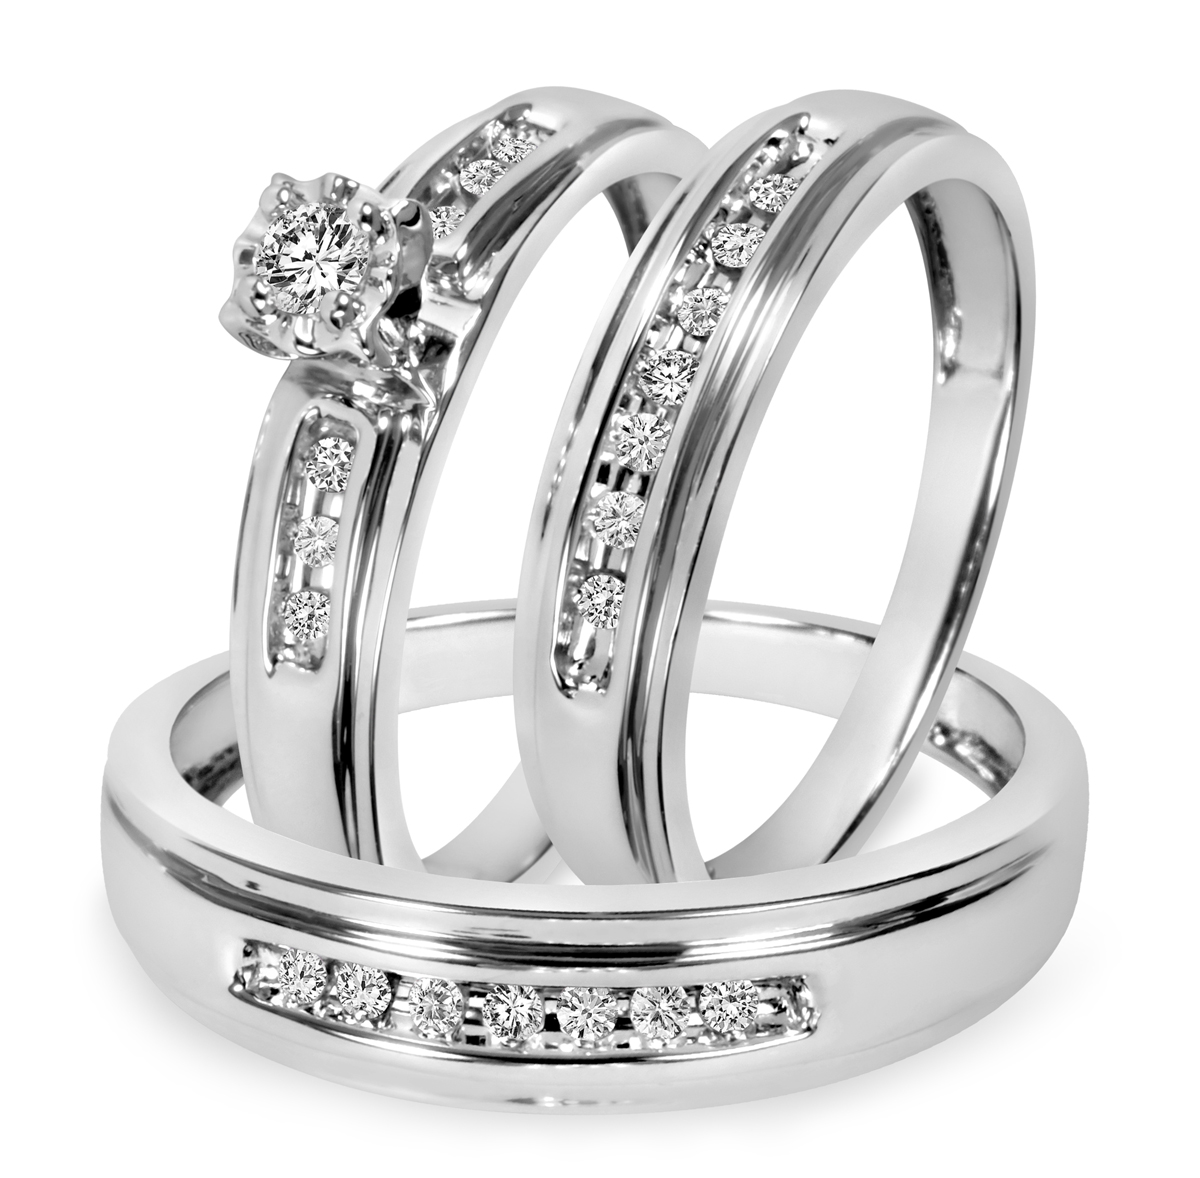 1/4 CT. T.W. Diamond Trio Matching Wedding Ring Set 10K White Gold